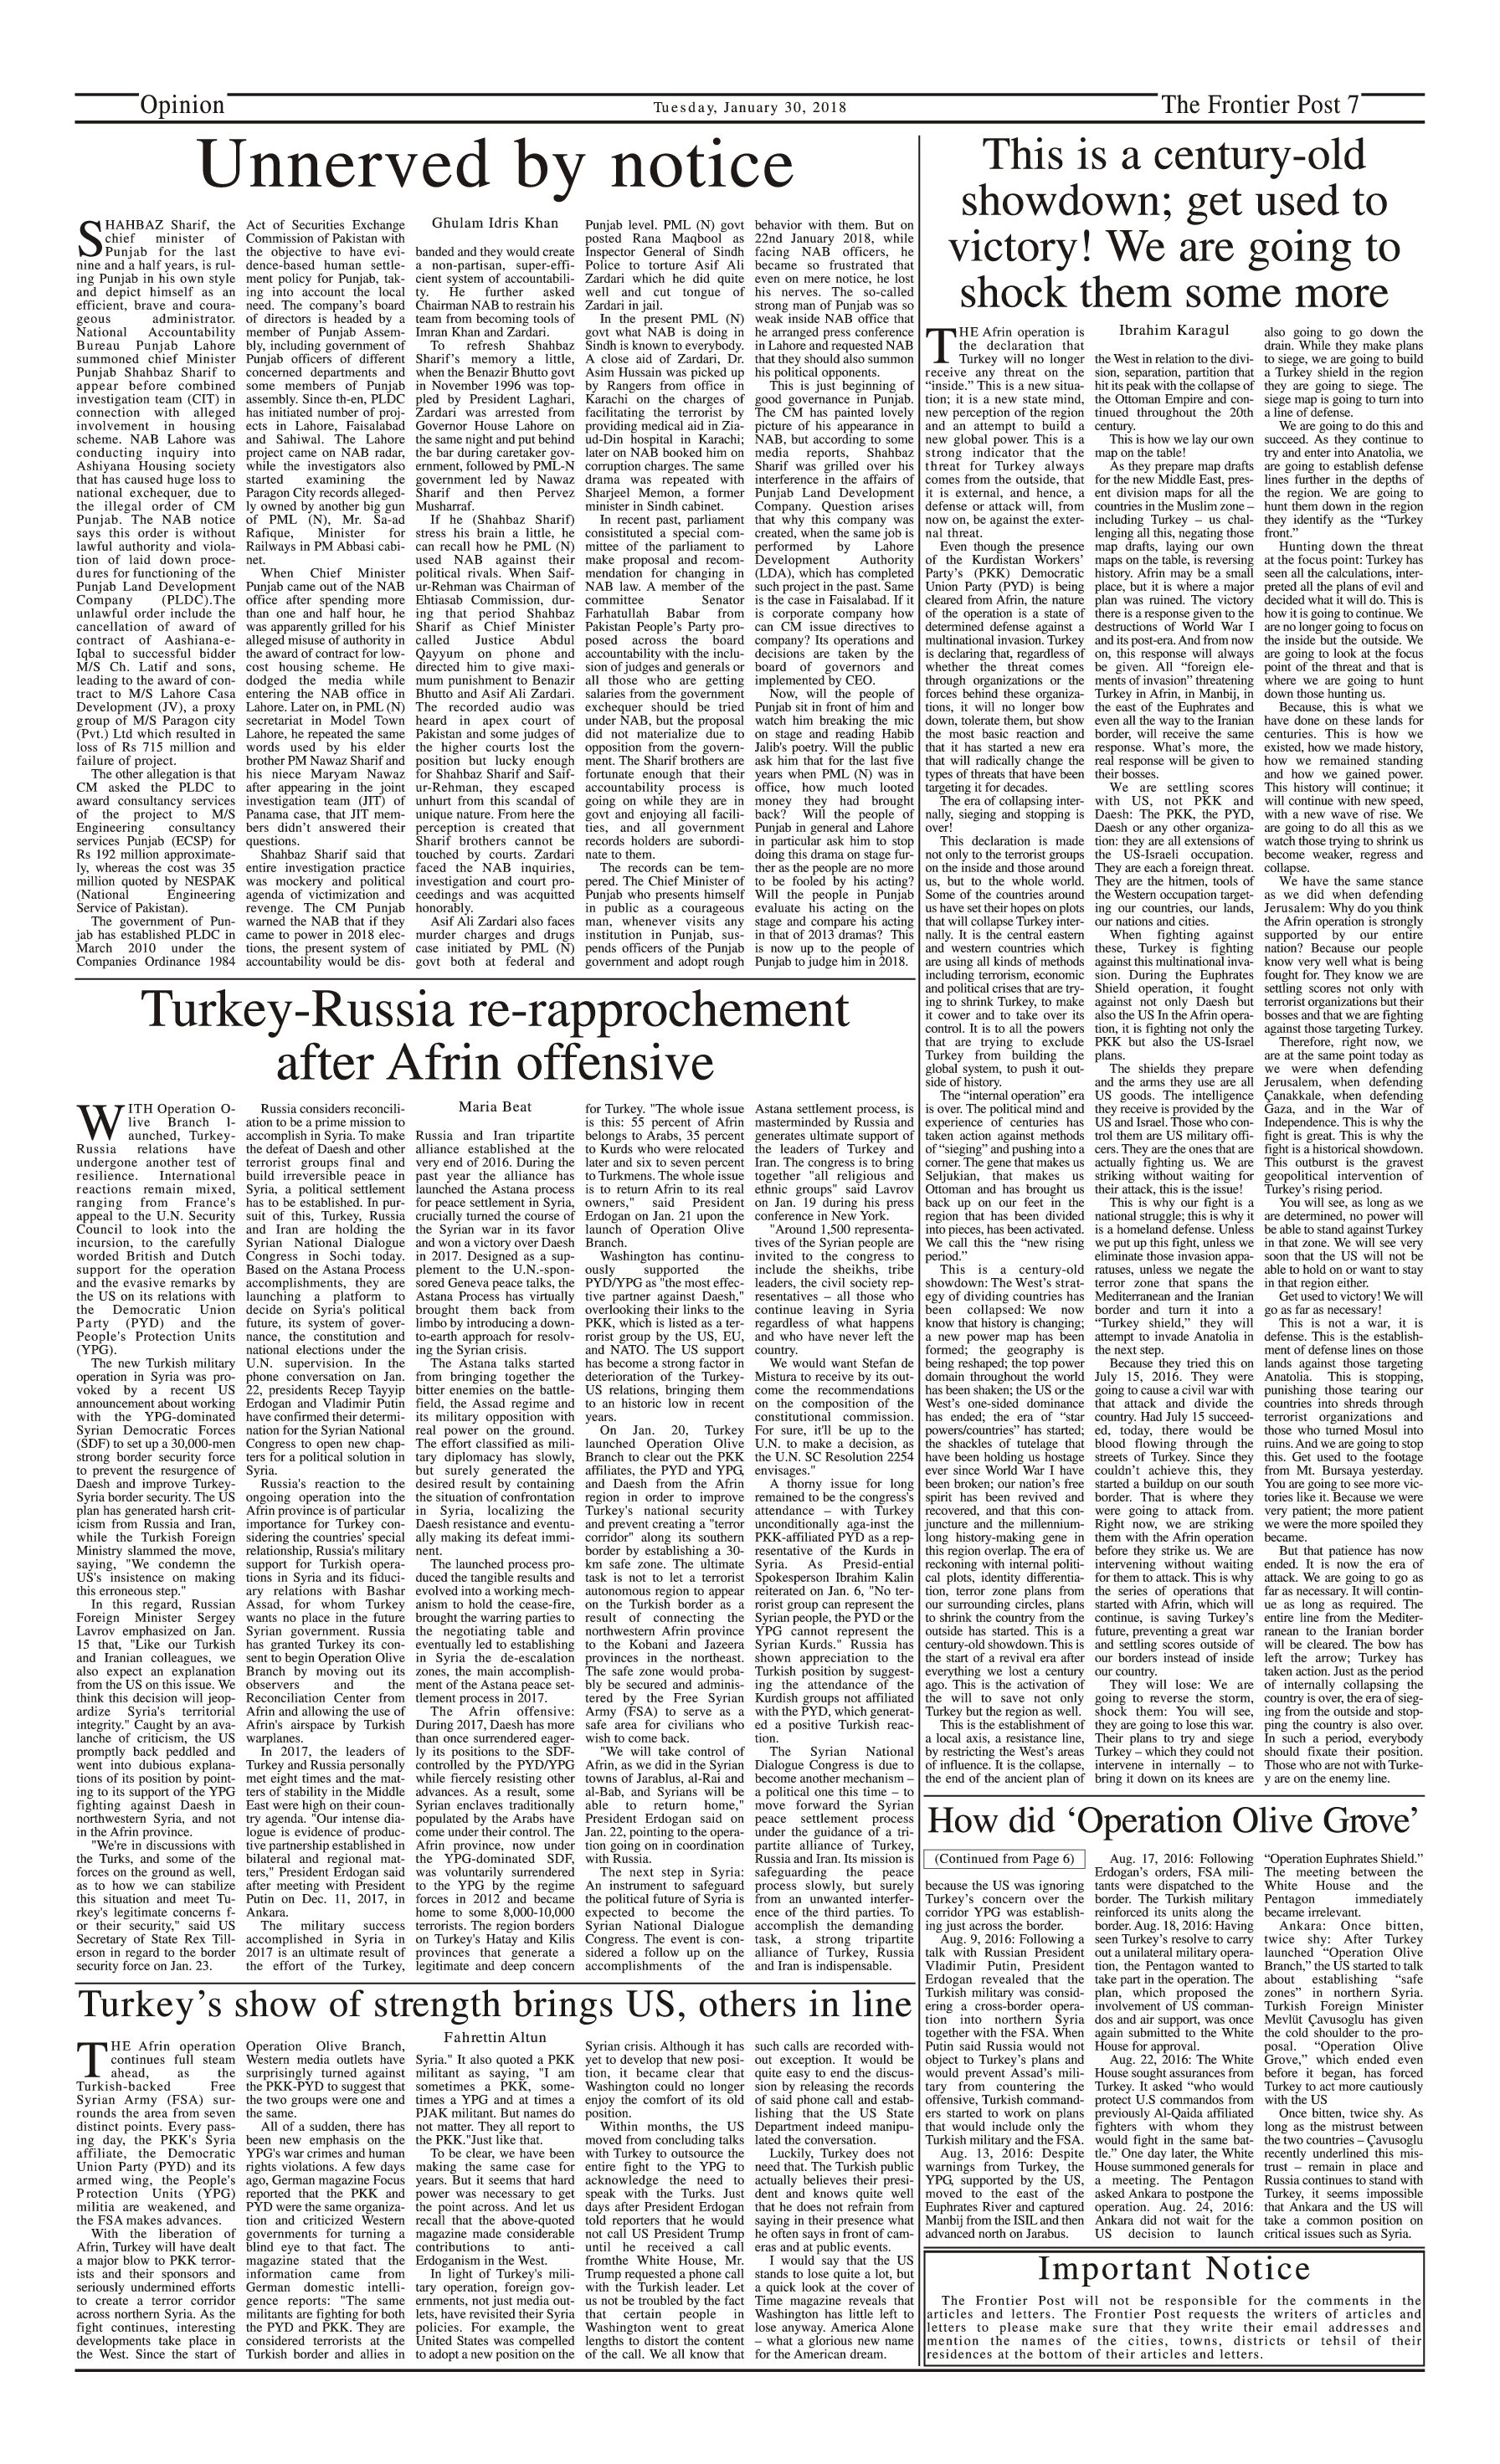 Opinion Page 30-1